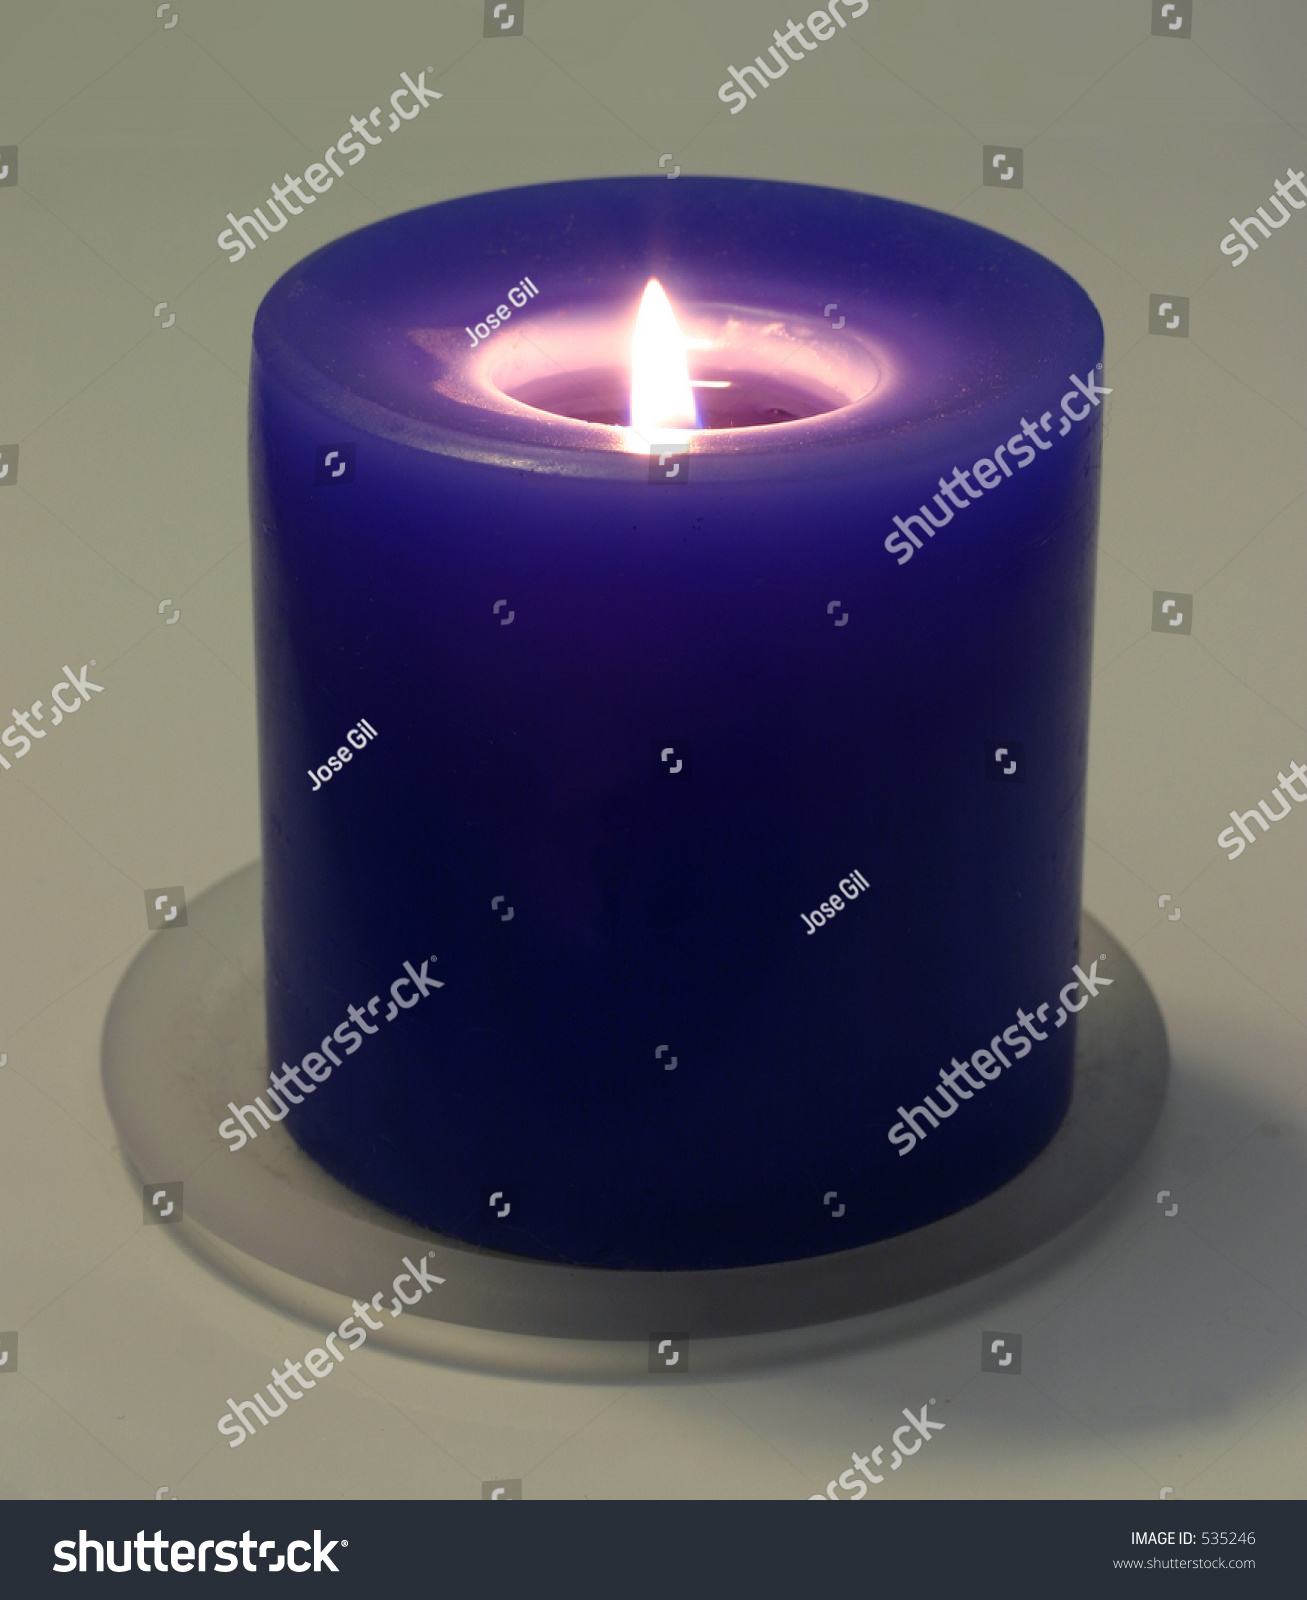 Blue Candle Alight On White Background Stock Photo 535246 ... for Blue Candle White Background  58cpg